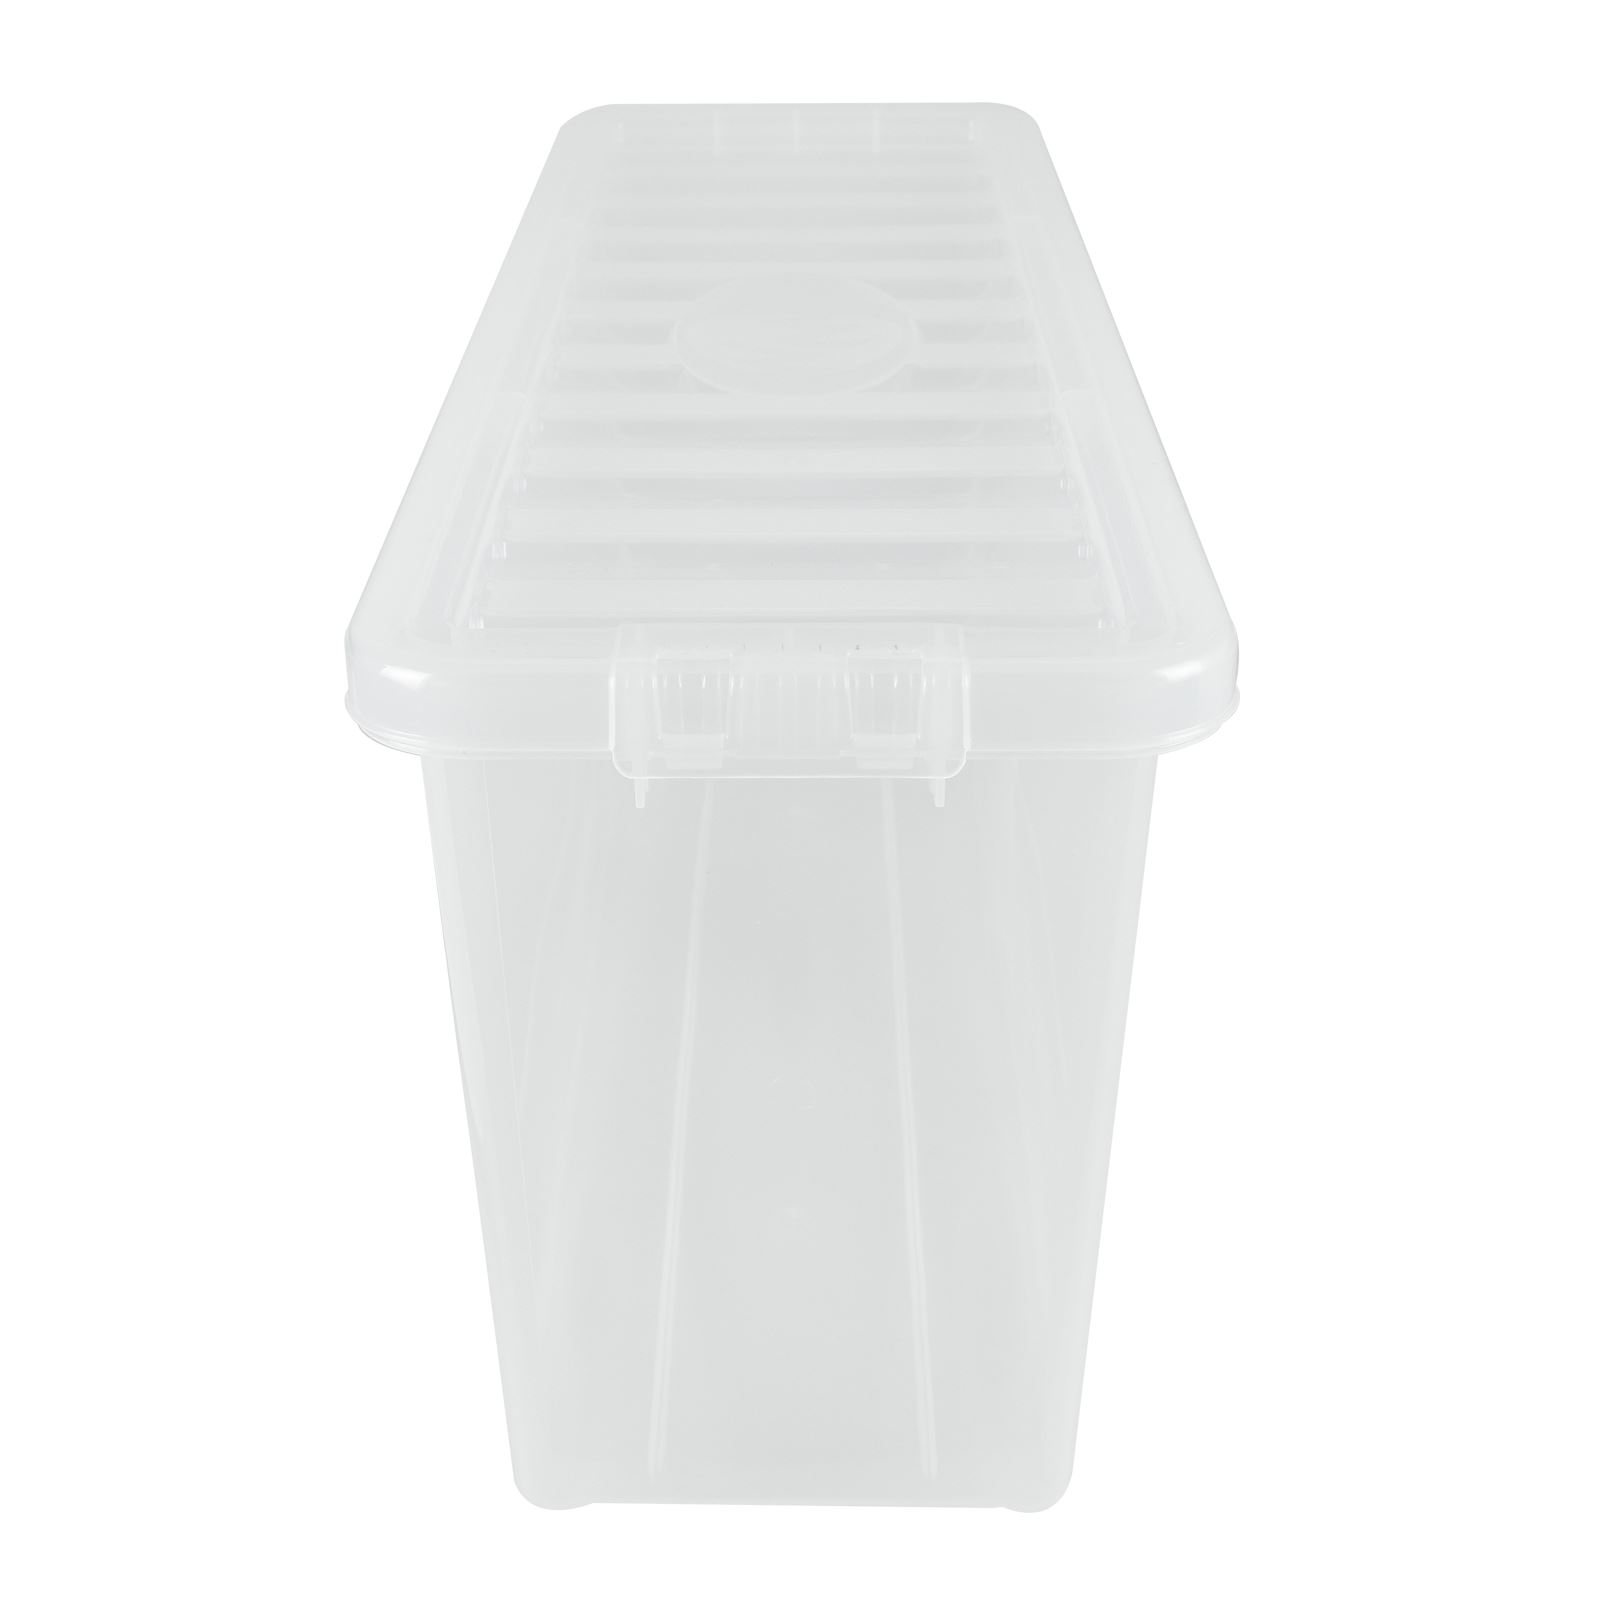 Wham-Crystal-Clear-Plastic-Storage-Box-Secure-Clip-on-Lid-Under-Bed-Space-Save thumbnail 10